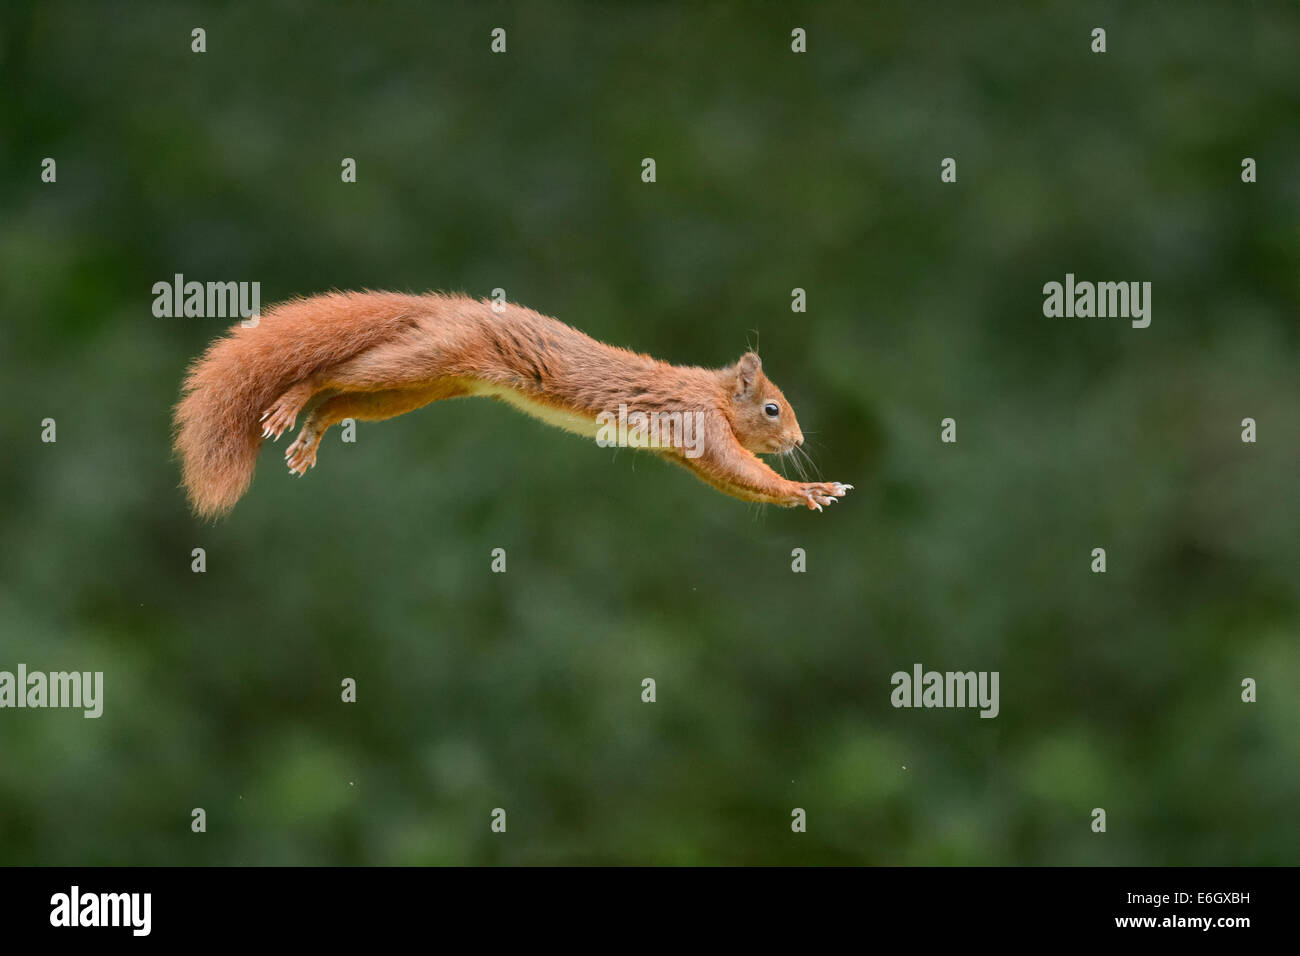 Red squirrel jumping - Stock Image